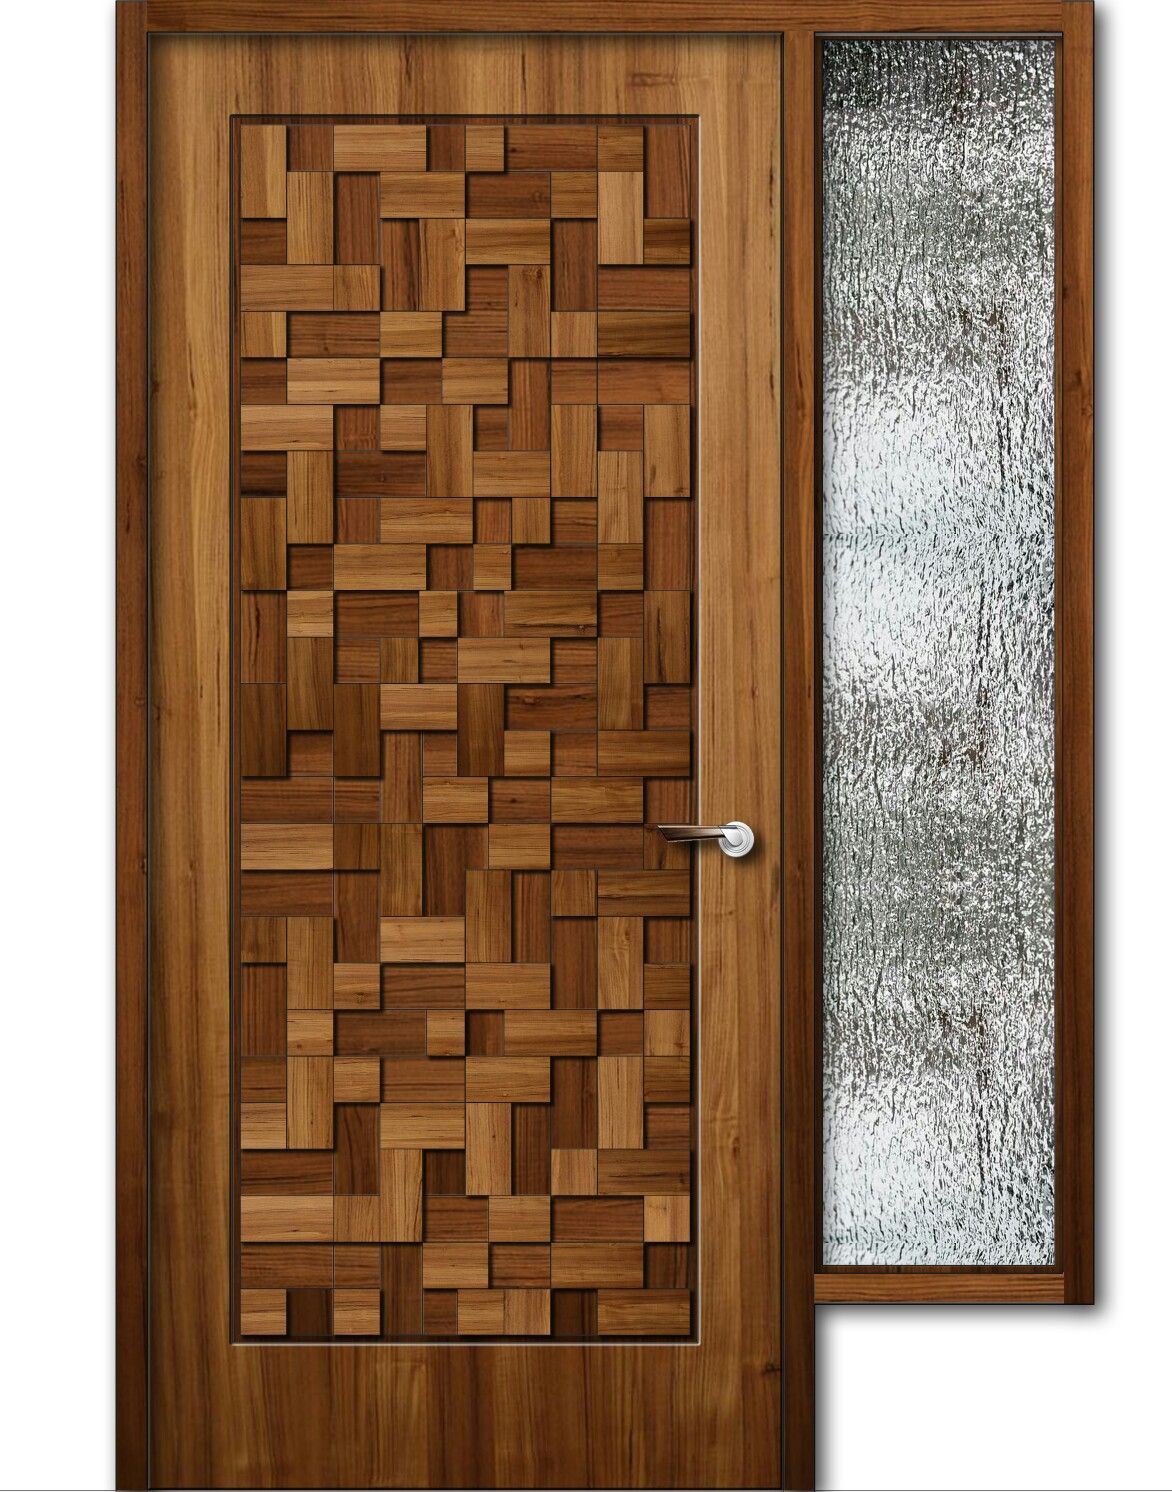 Teak wood finish wooden door with window 8feet height for Door patterns home